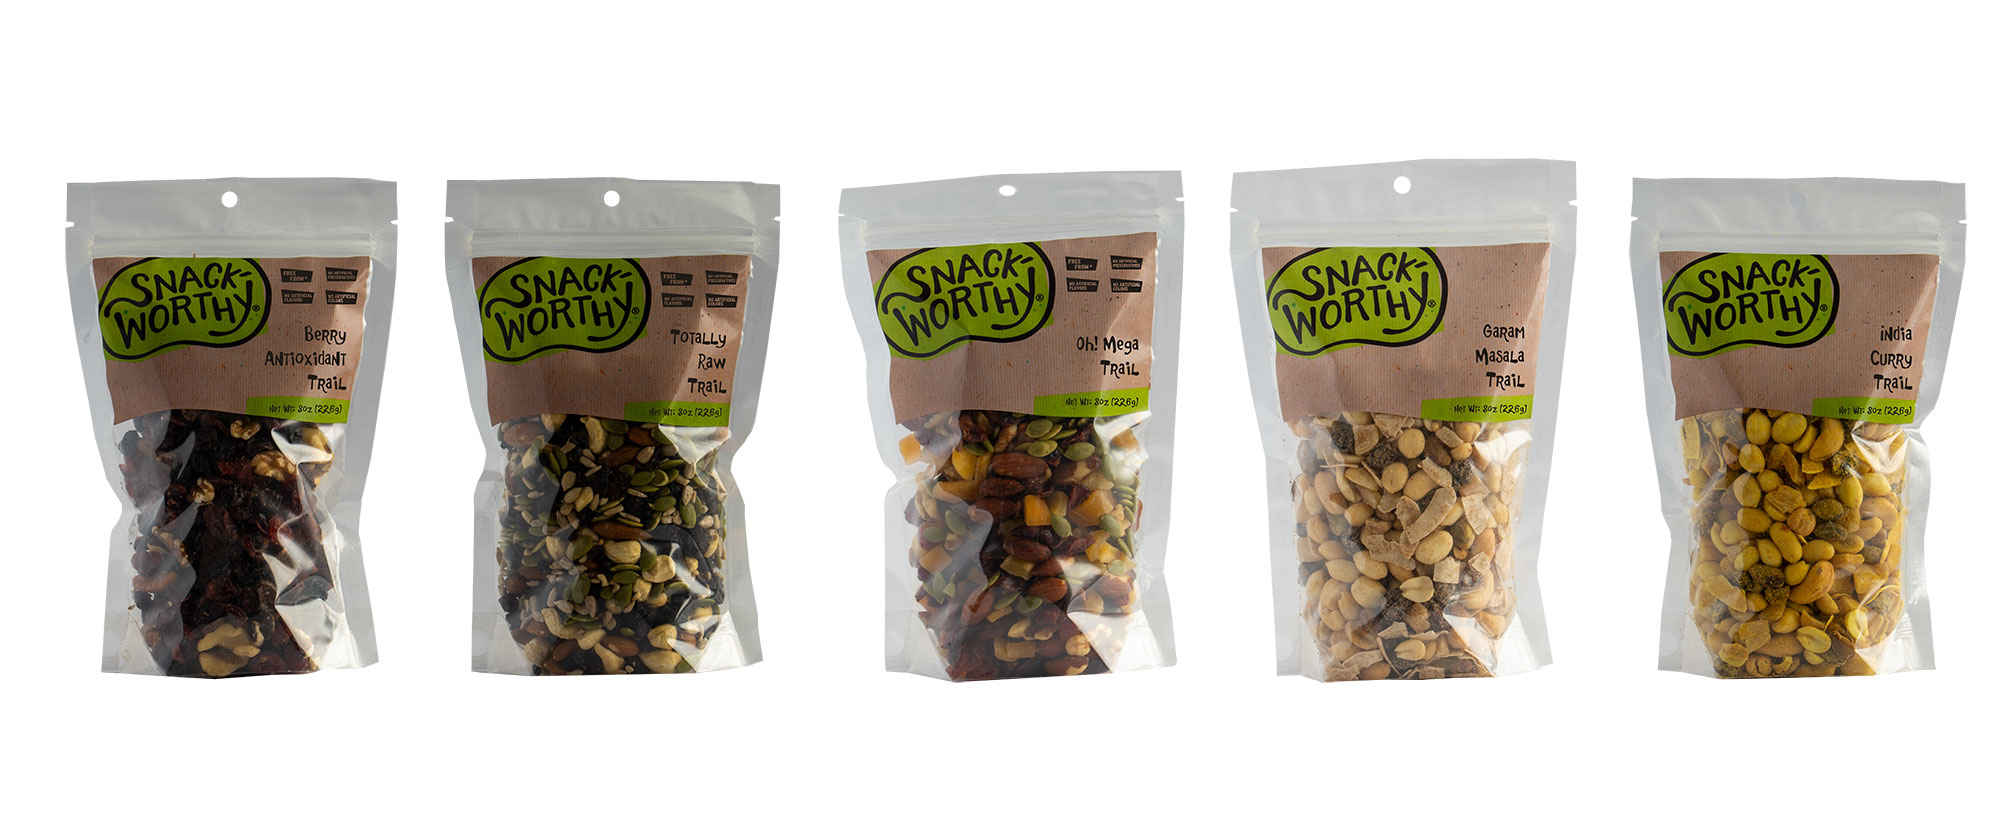 Our new trail mixes displayed in their Snackworthy branded bags